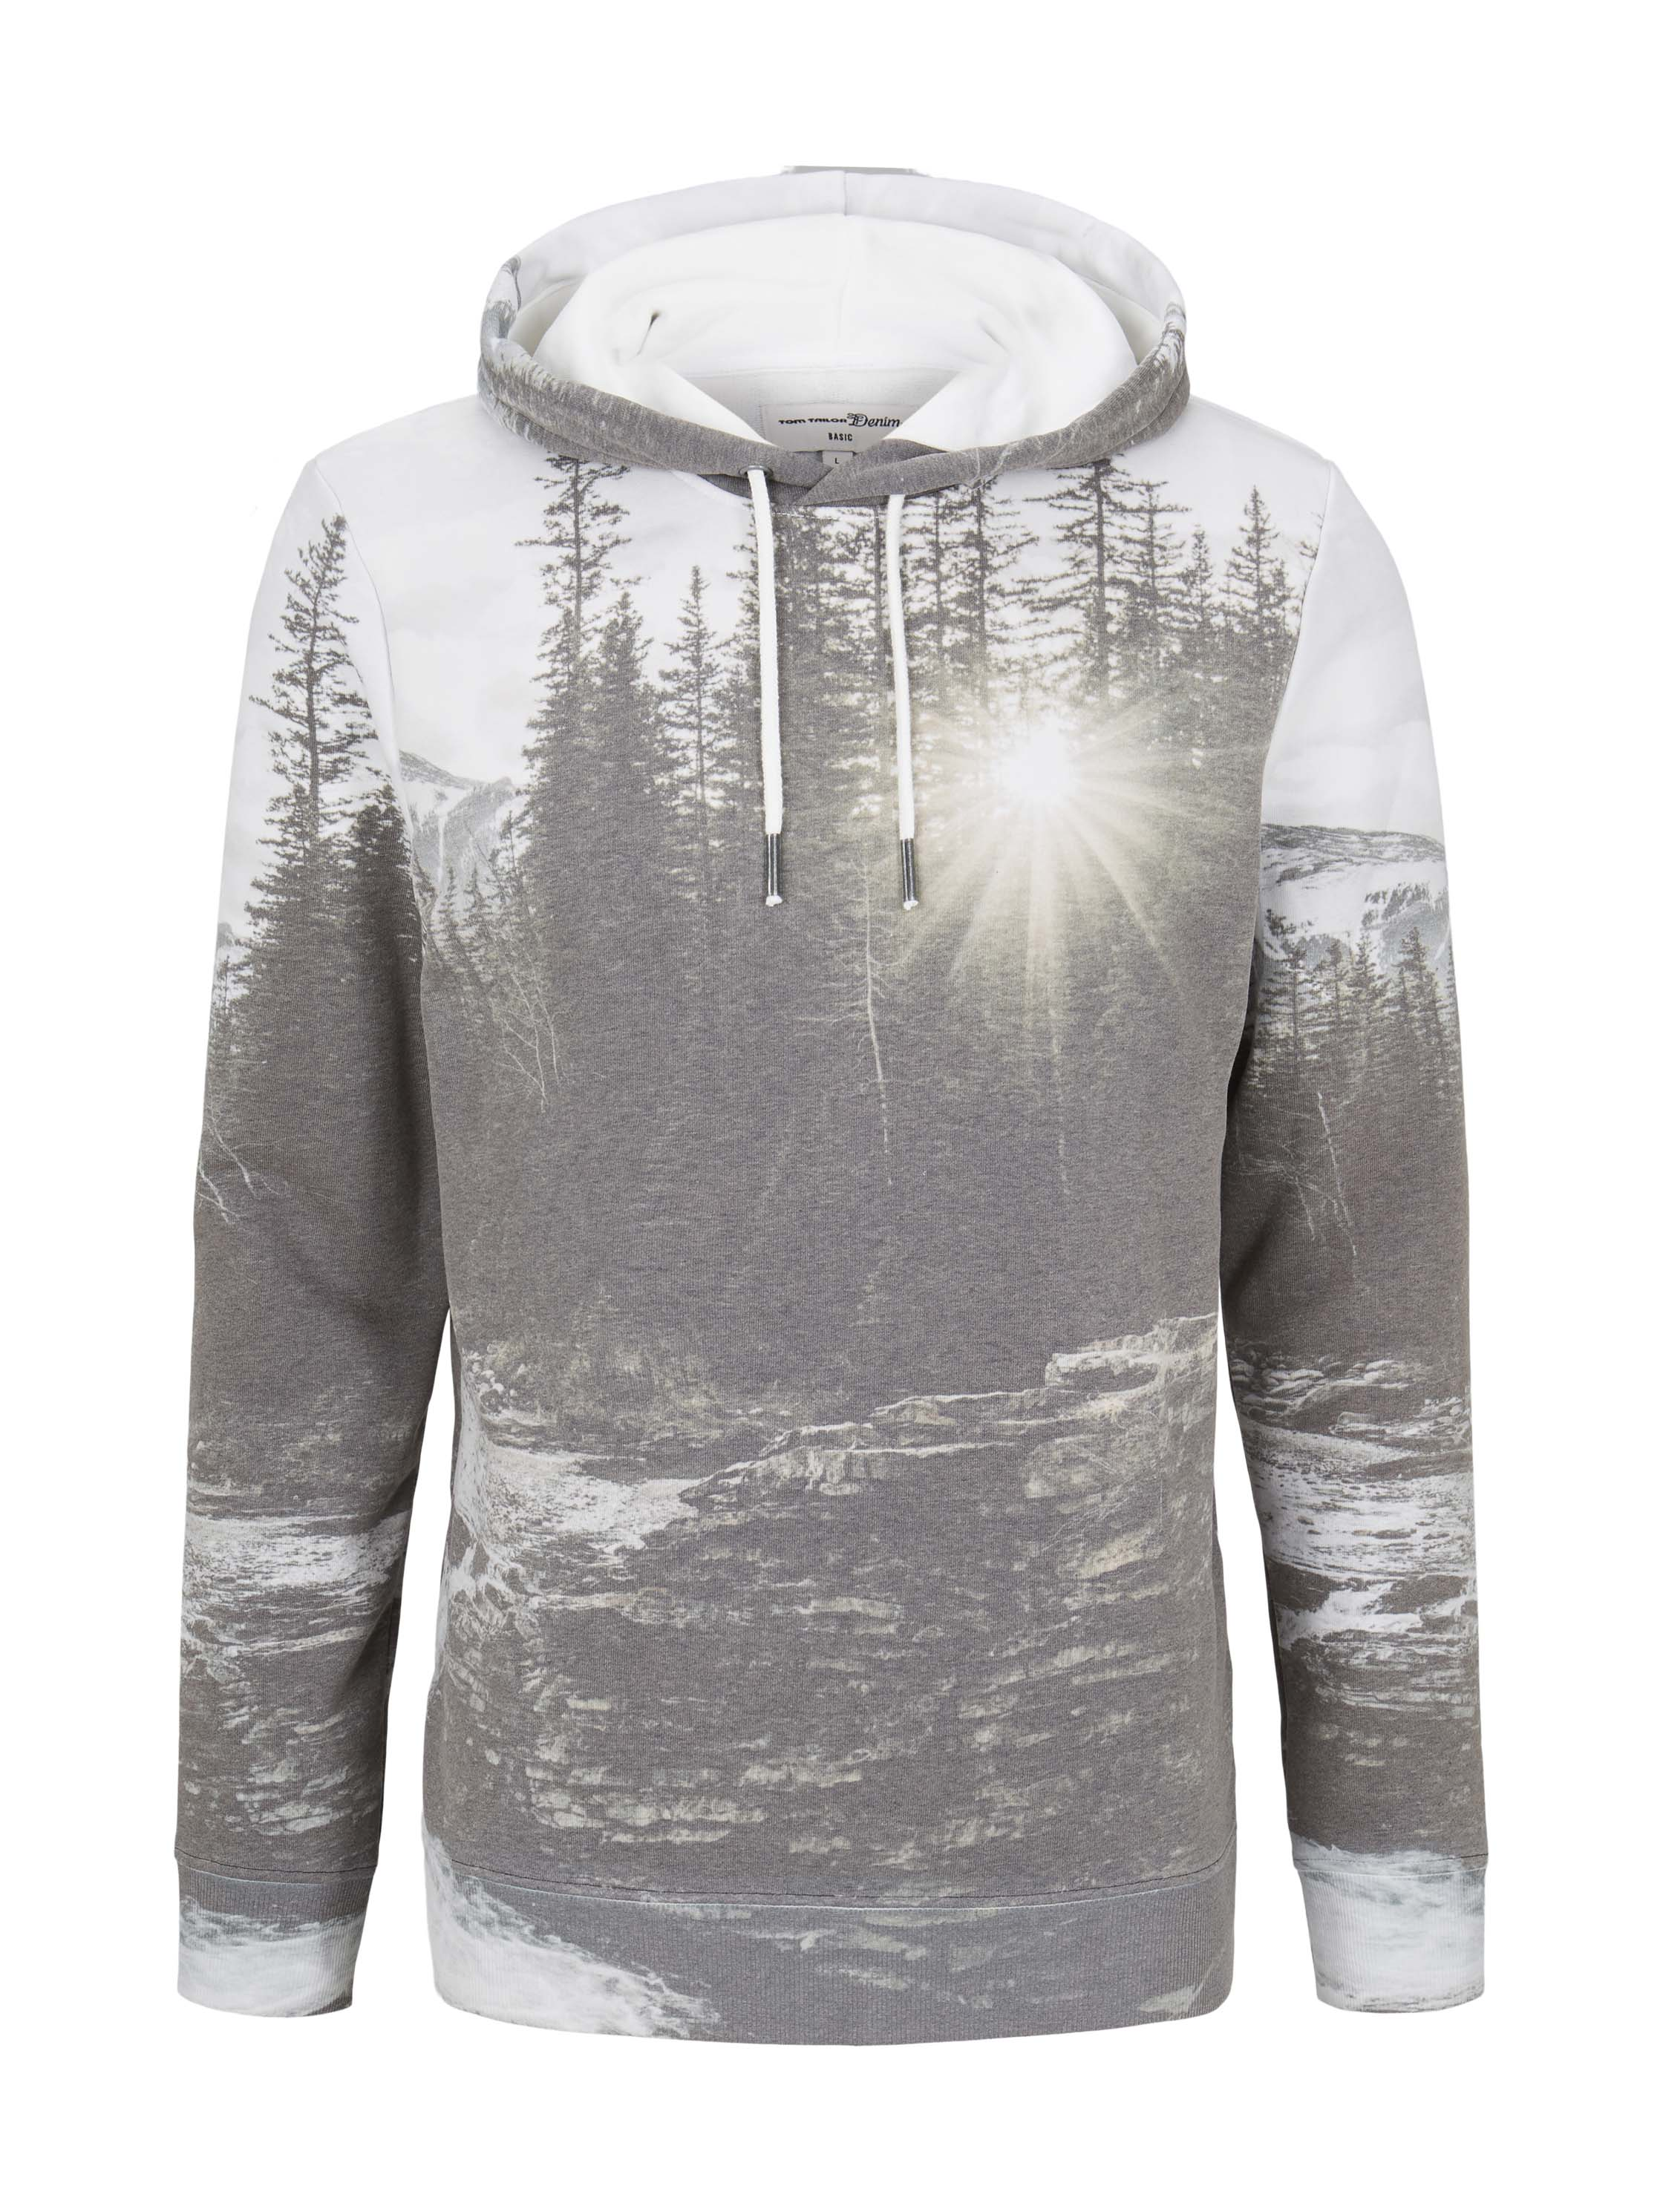 hoody with fotoprint, autumn forest photo print